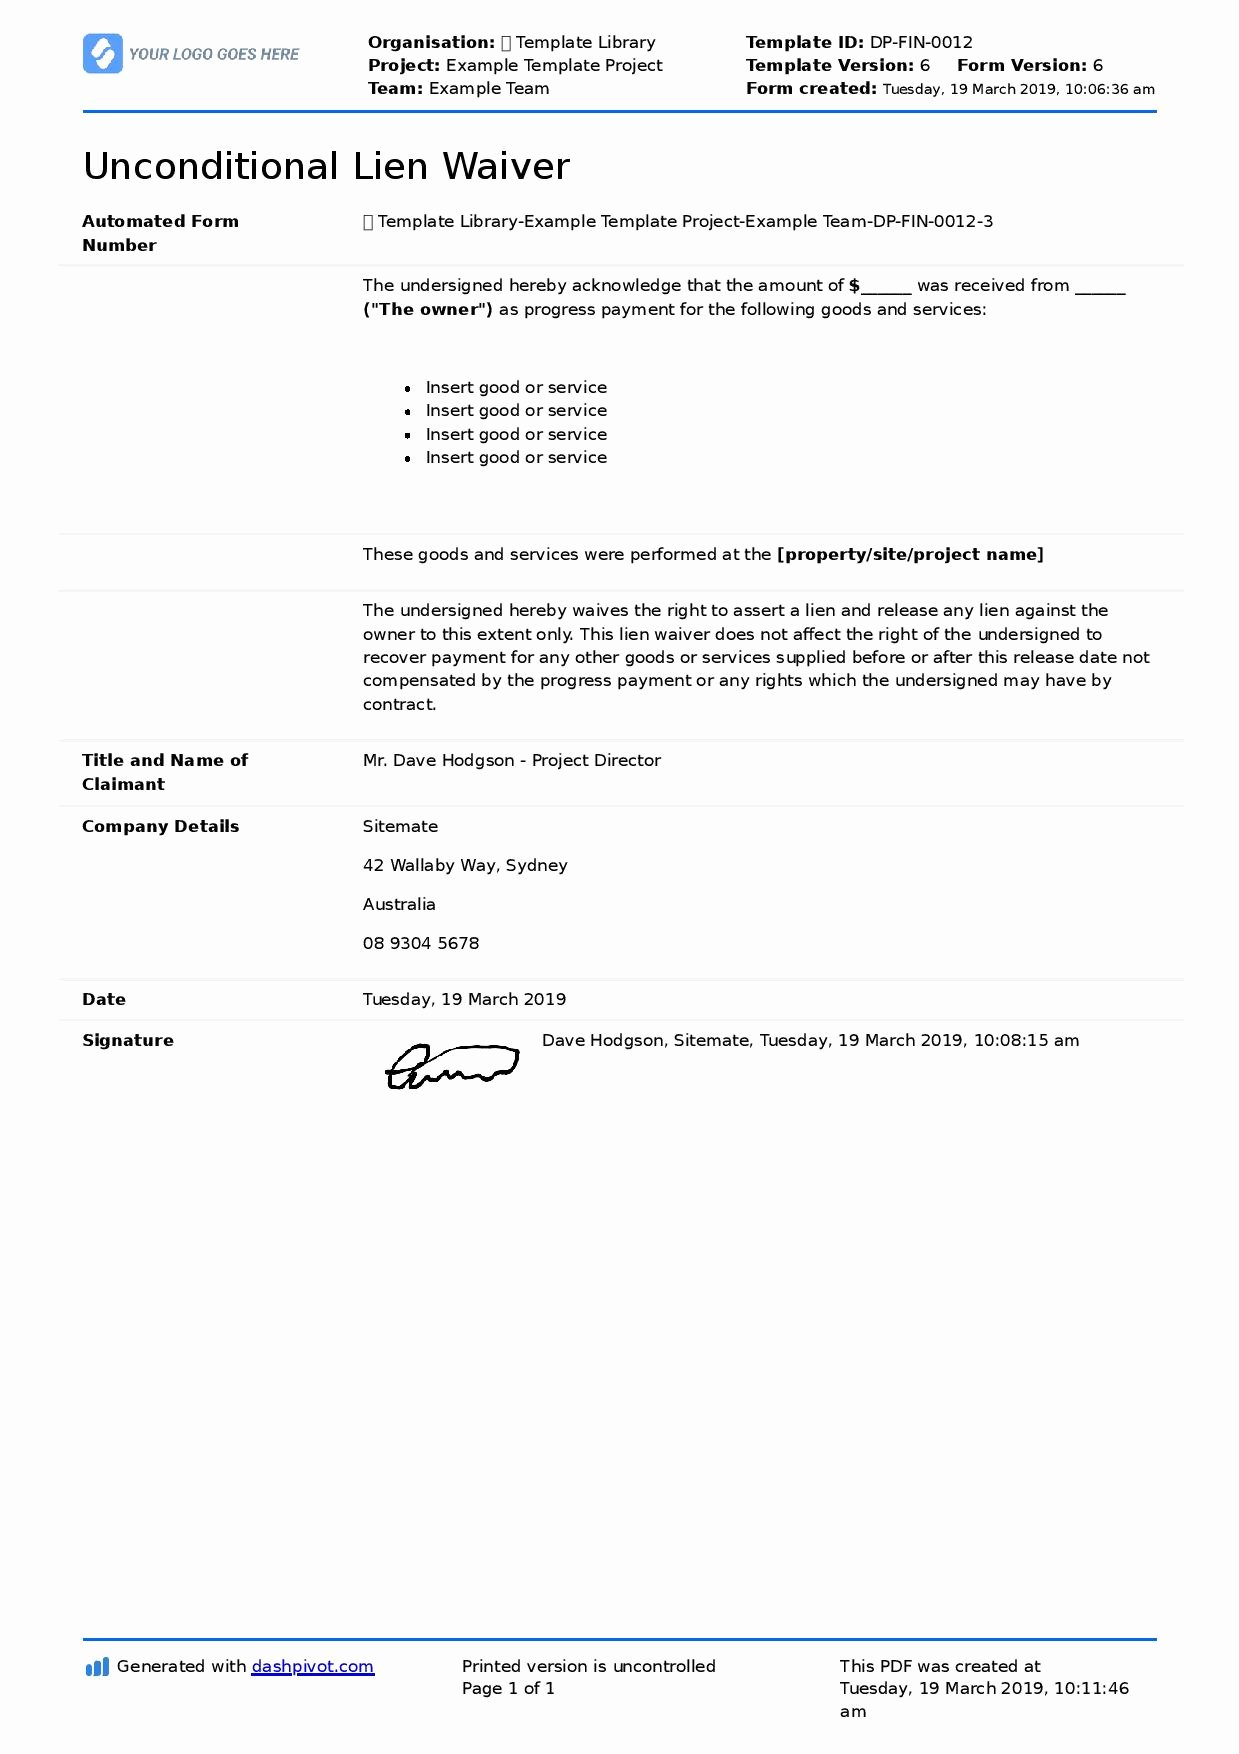 Lien Waiver form Template Lovely Unconditional Lien Waiver Template for Any Unconditional